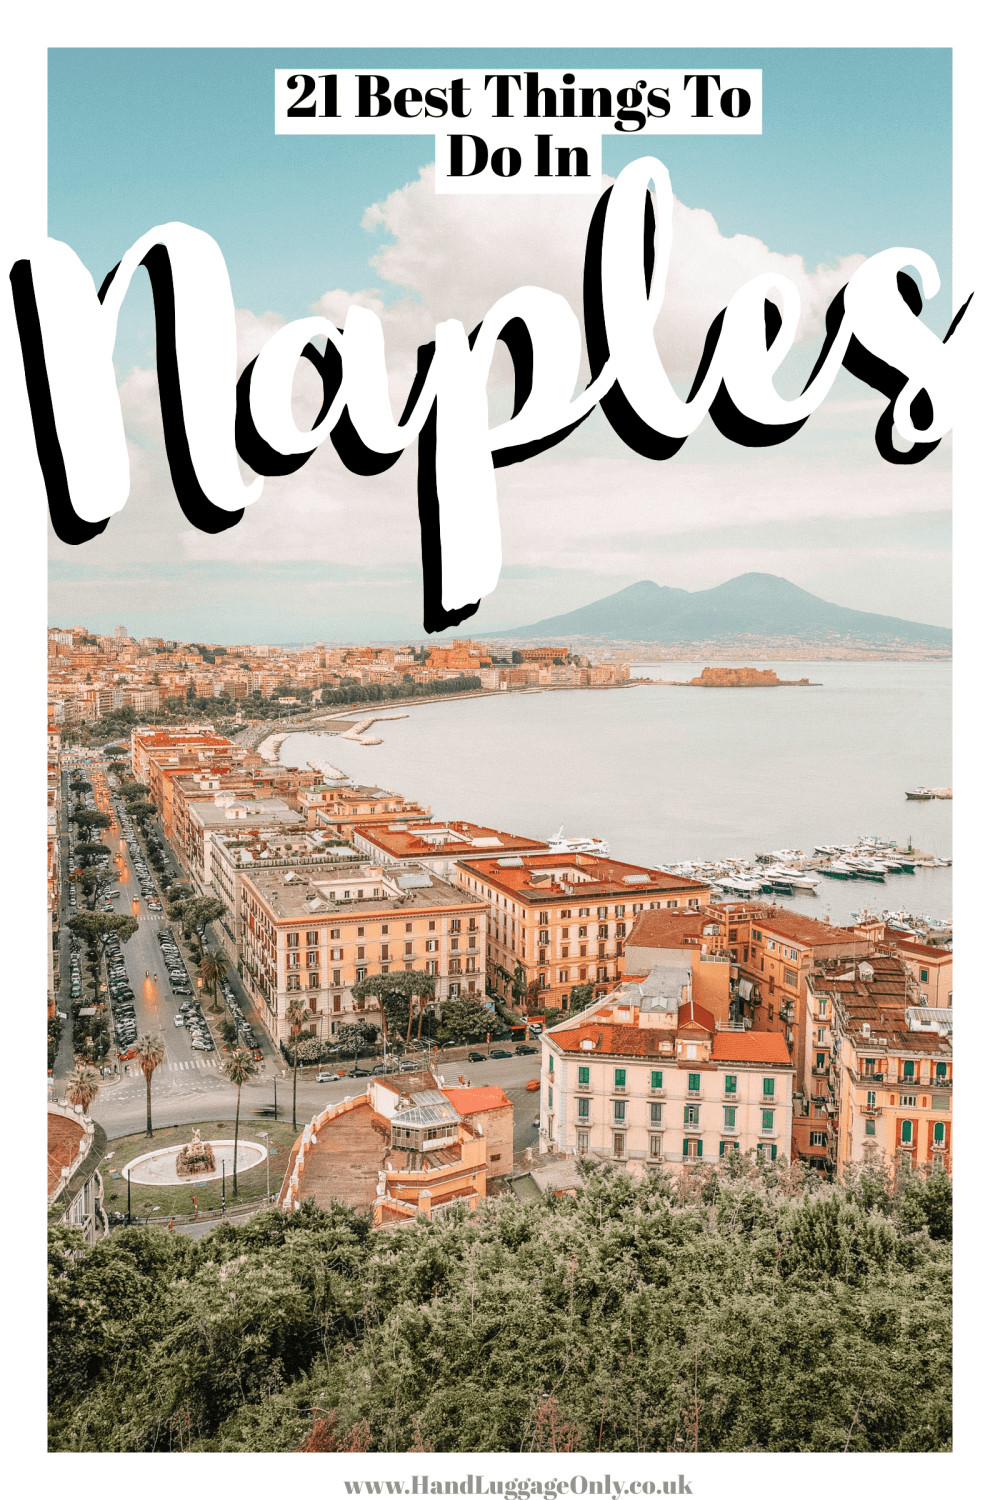 Best Things To Do In Naples (1)